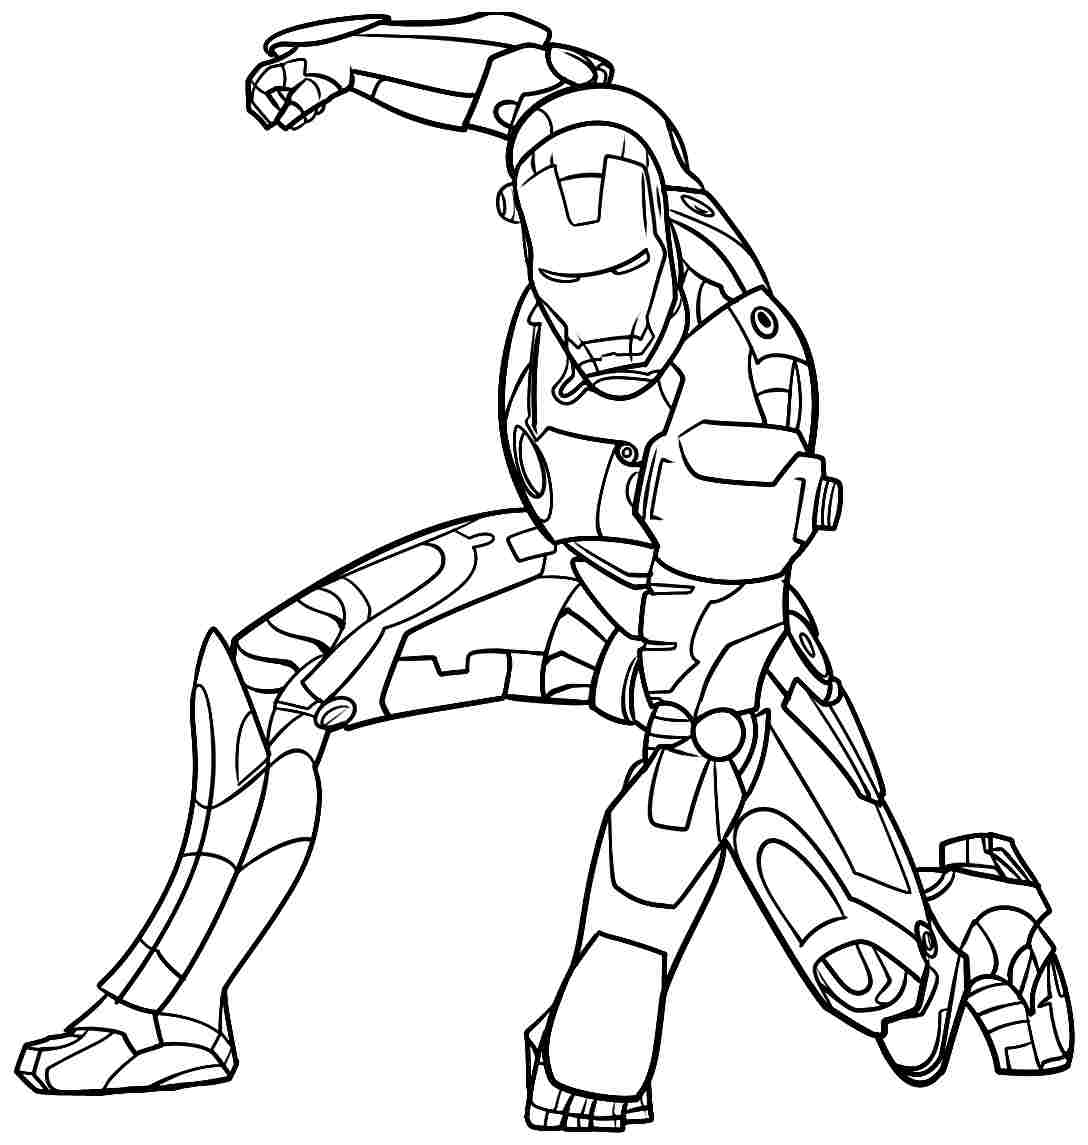 ironman printable coloring pages ironman coloring page pages coloring ironman printable